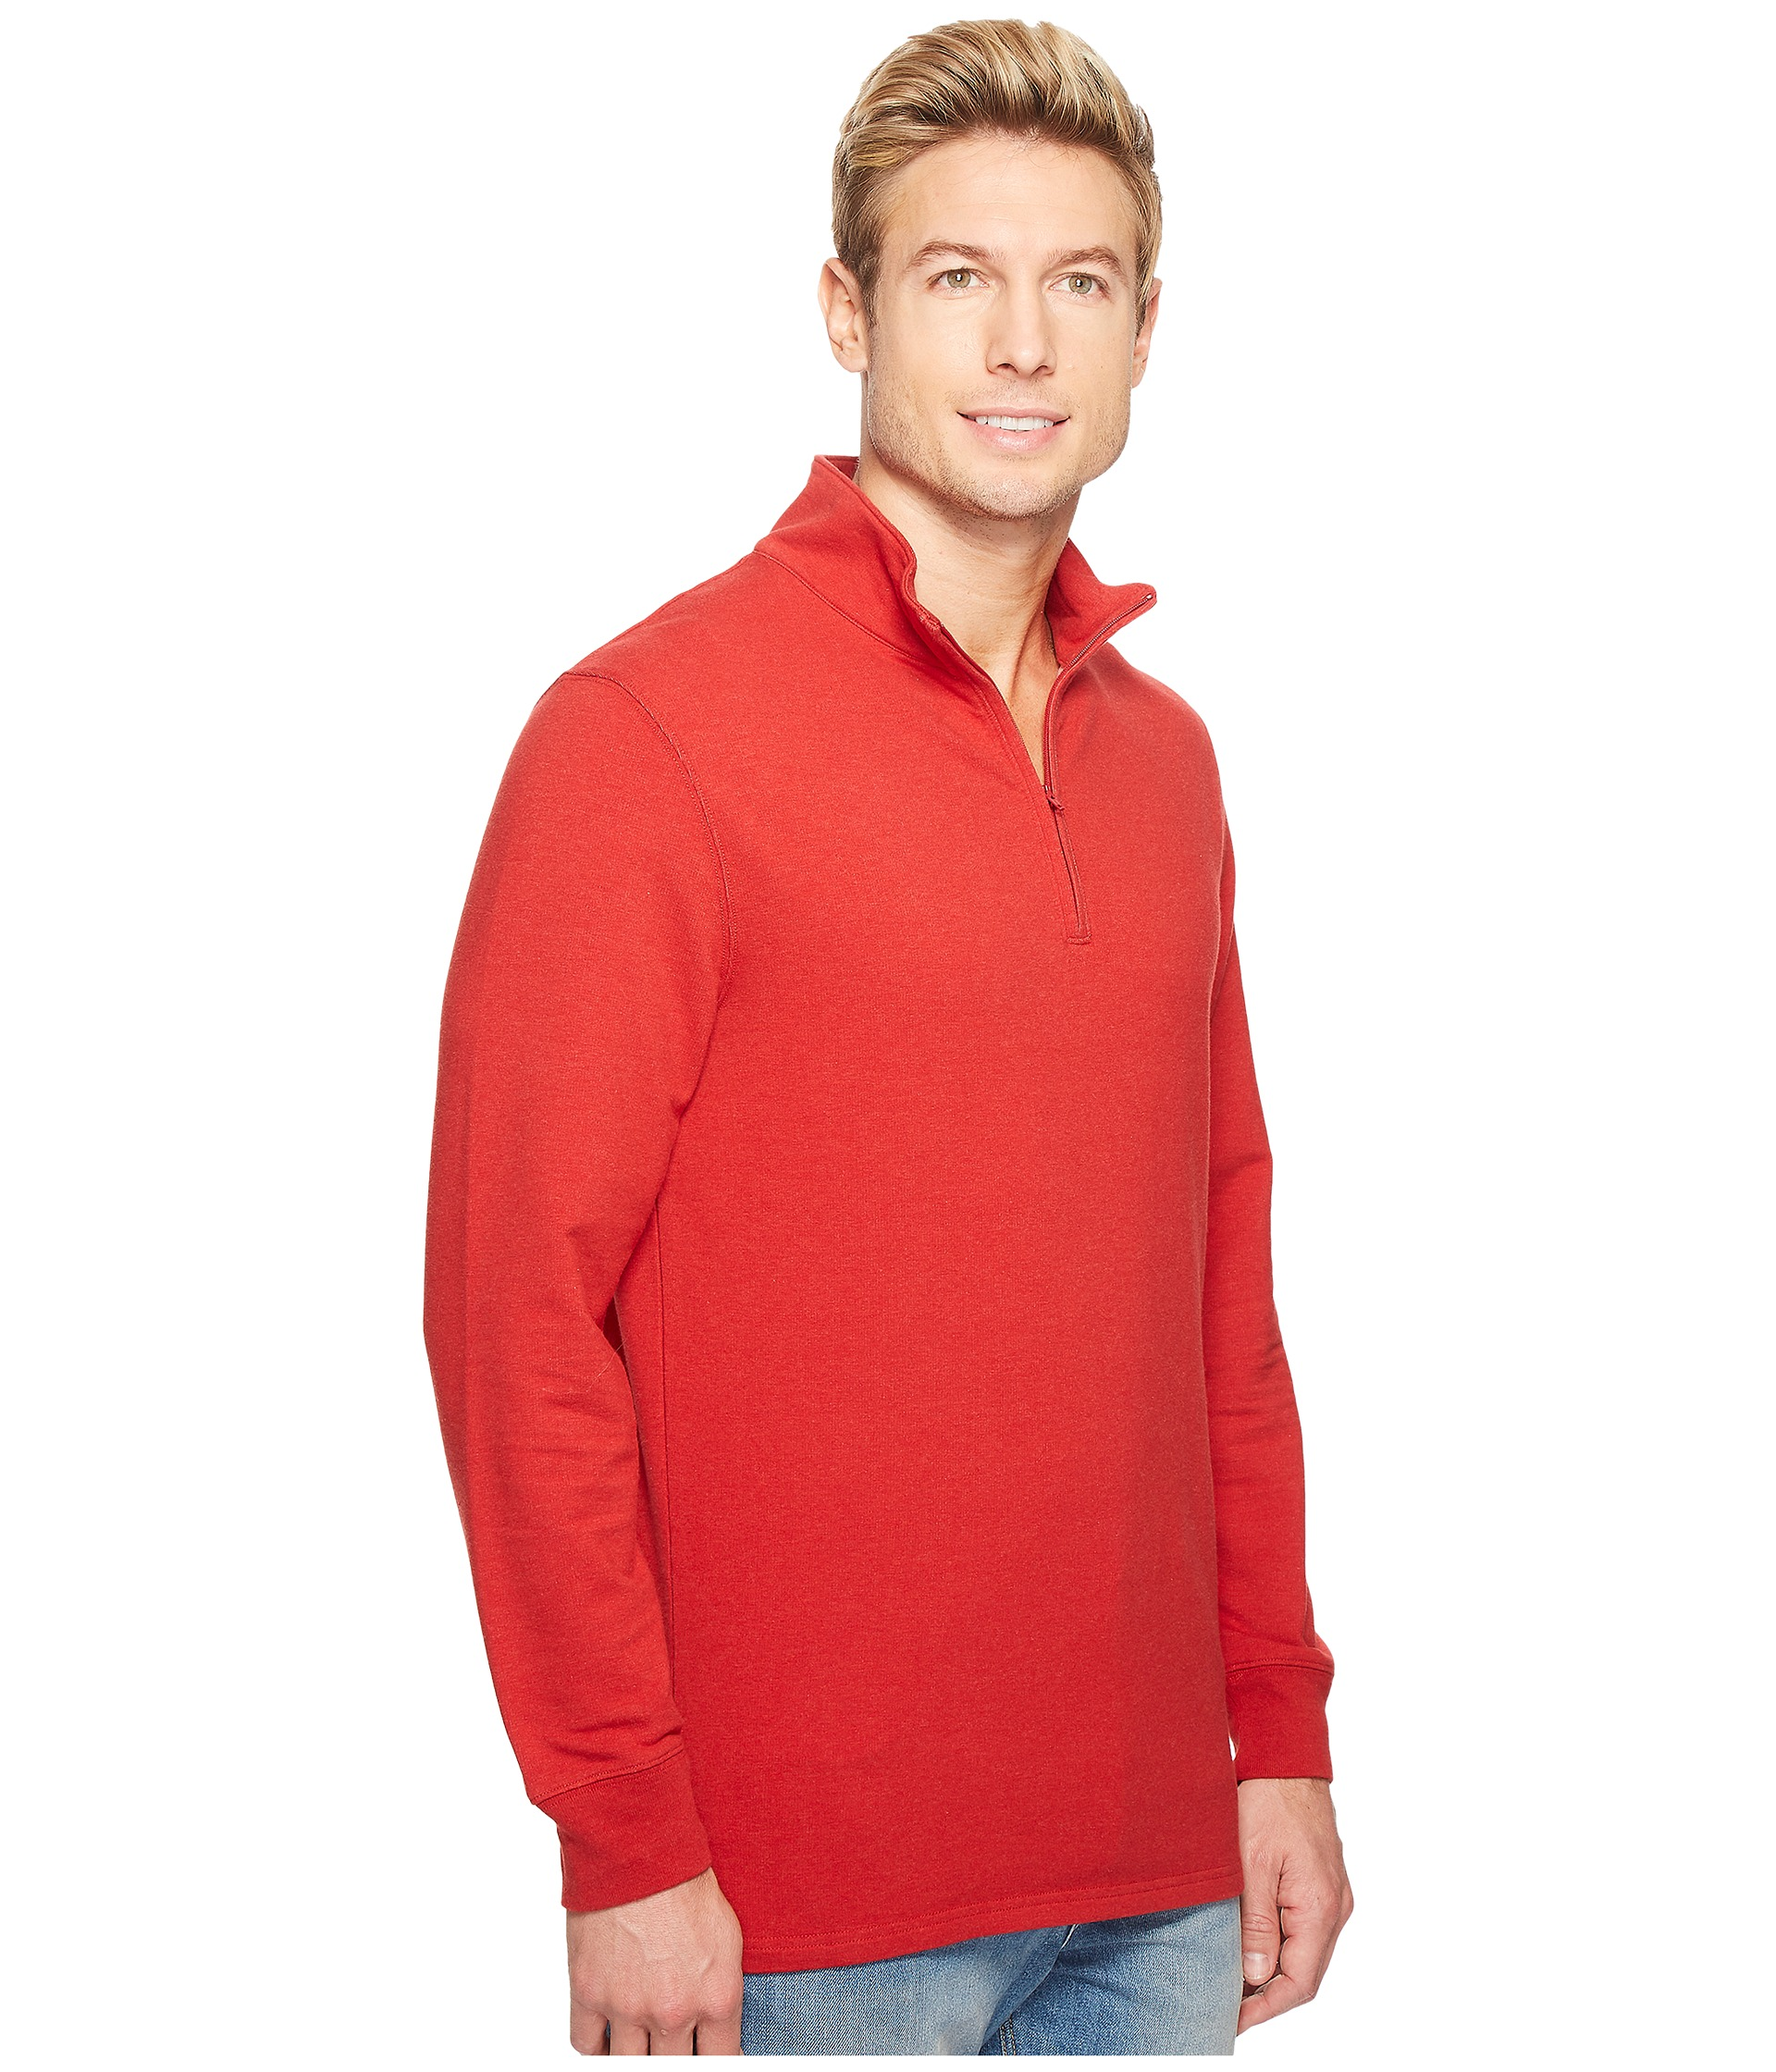 coos bay men 23 results  clothing stores in coos bay on ypcom  coos bay, or clothing stores   chain, specializing in providing off-price apparel and accessories for men,.